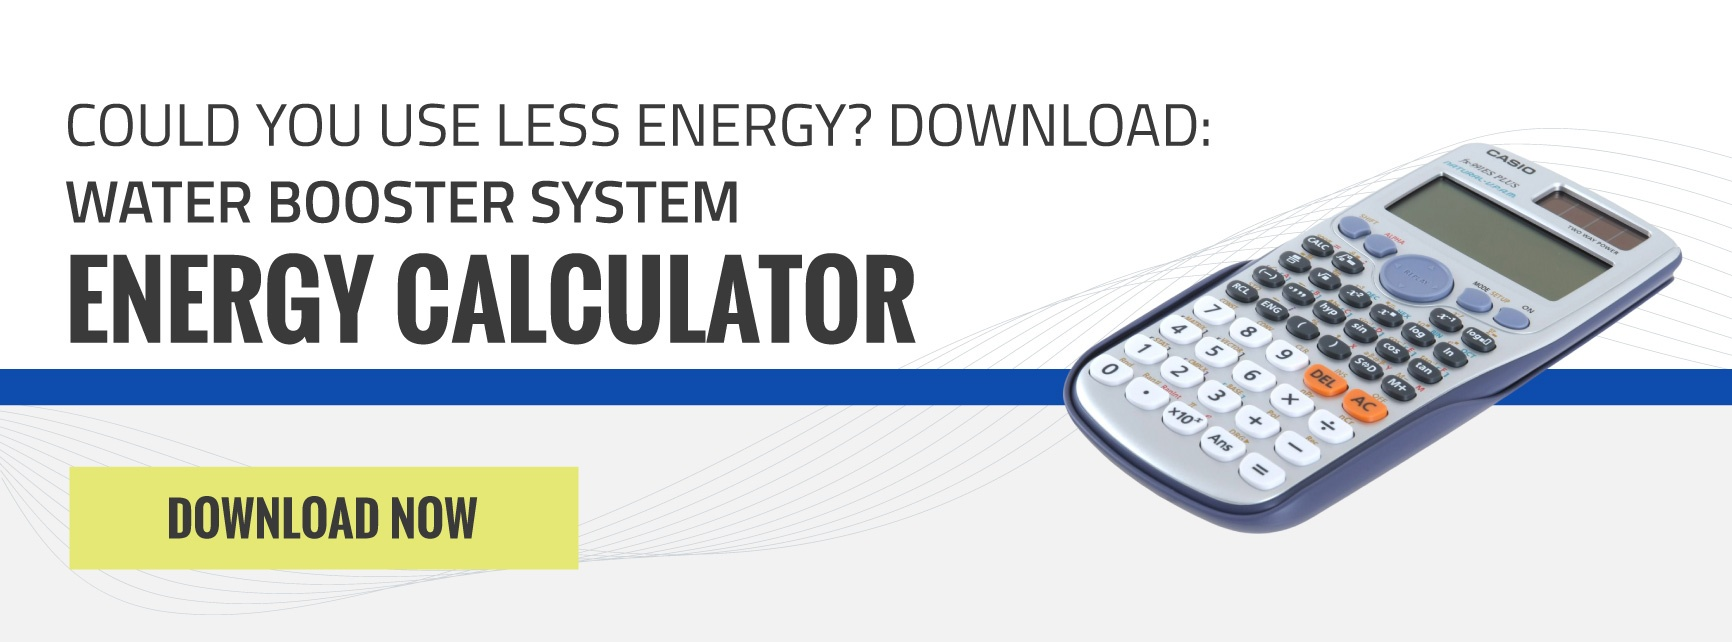 Download Water Booster System Energy Calculator